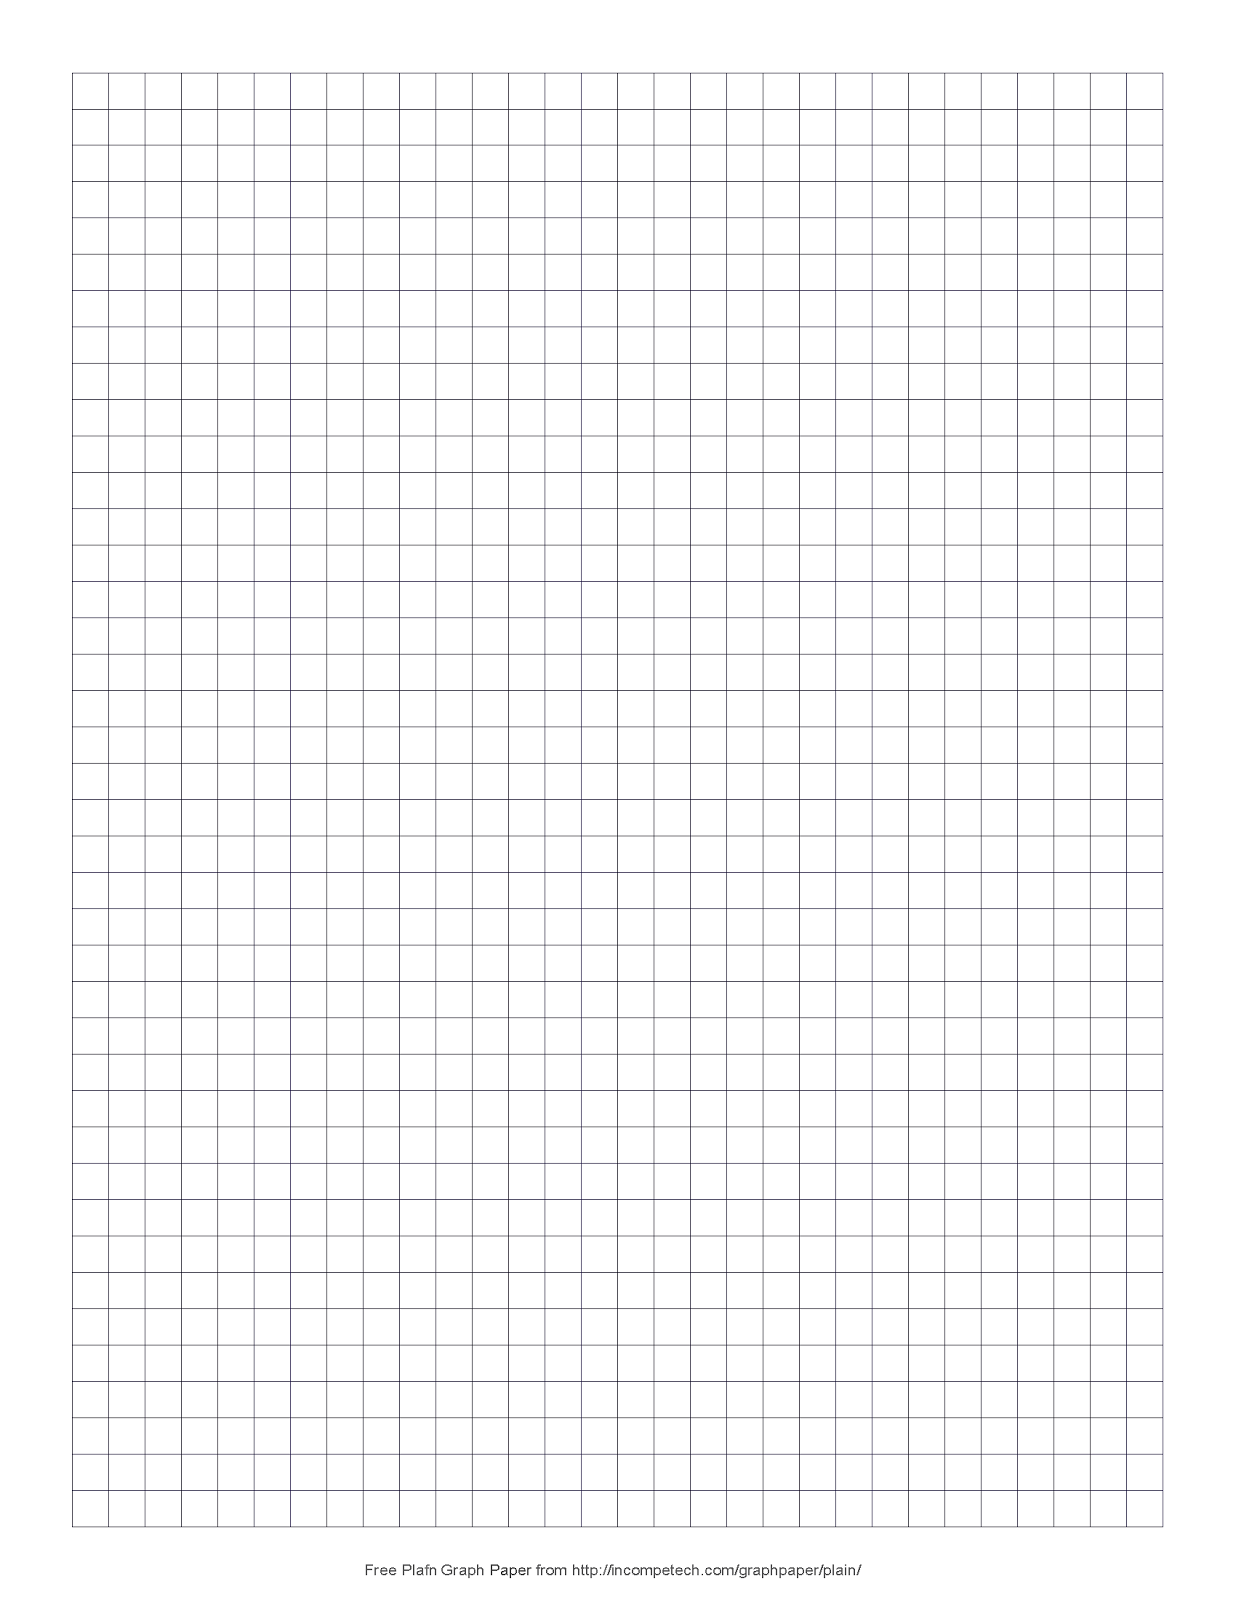 chapter 17 cpo textbook graph paper and summary template miss